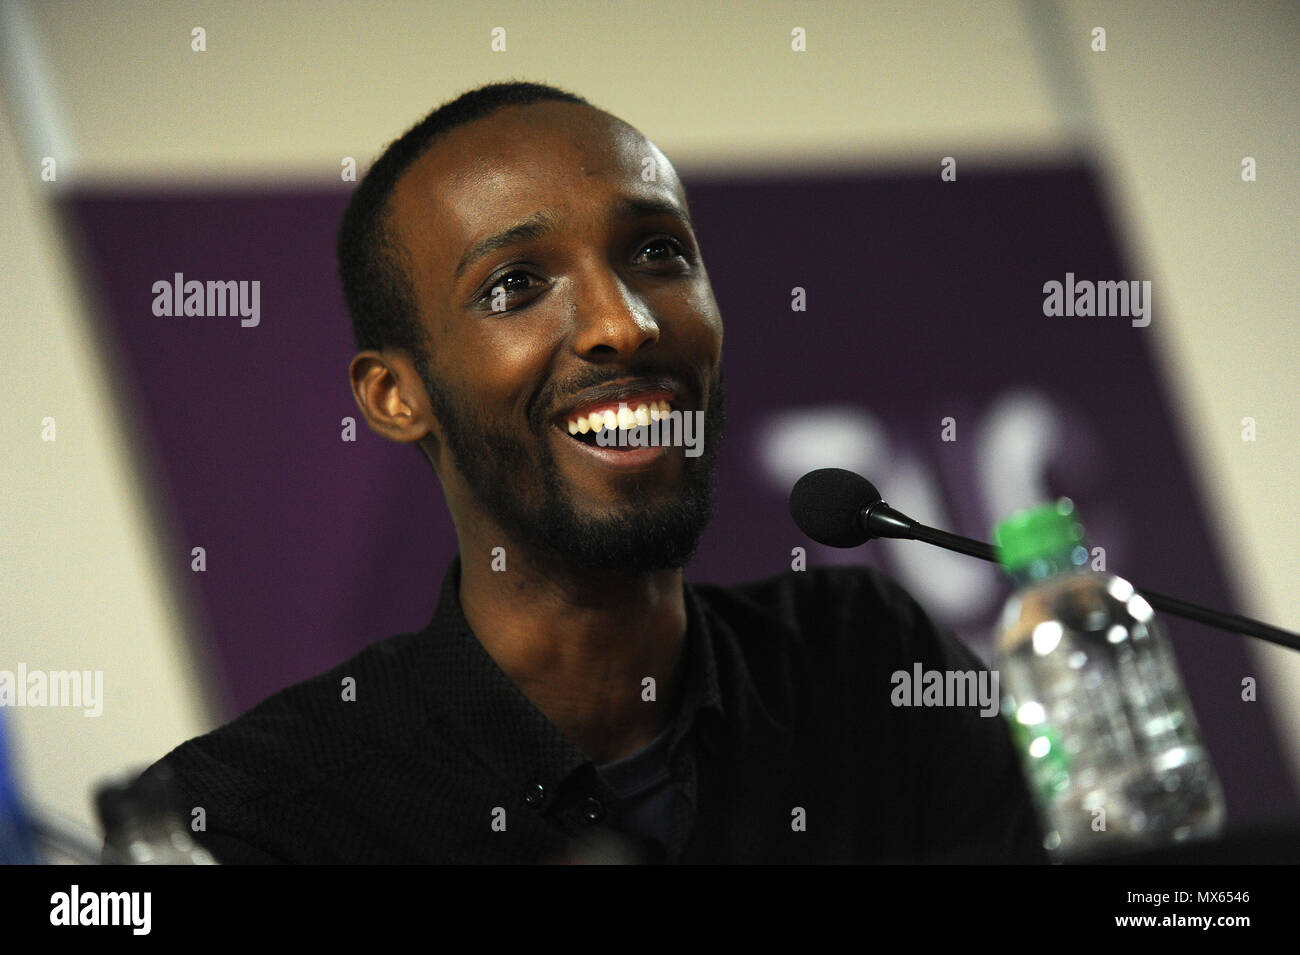 Birmingham, England. 2nd June, 2018.  Abdi Hussan, Muslim Association of Britain, delivers his  speech at the the Midlands TUC and Stand Up to Racism regional summit, 'Confronting the Rise in Racism', at the Midlands TUC Offices. Kevin Hayes/Alamy Live News - Stock Image